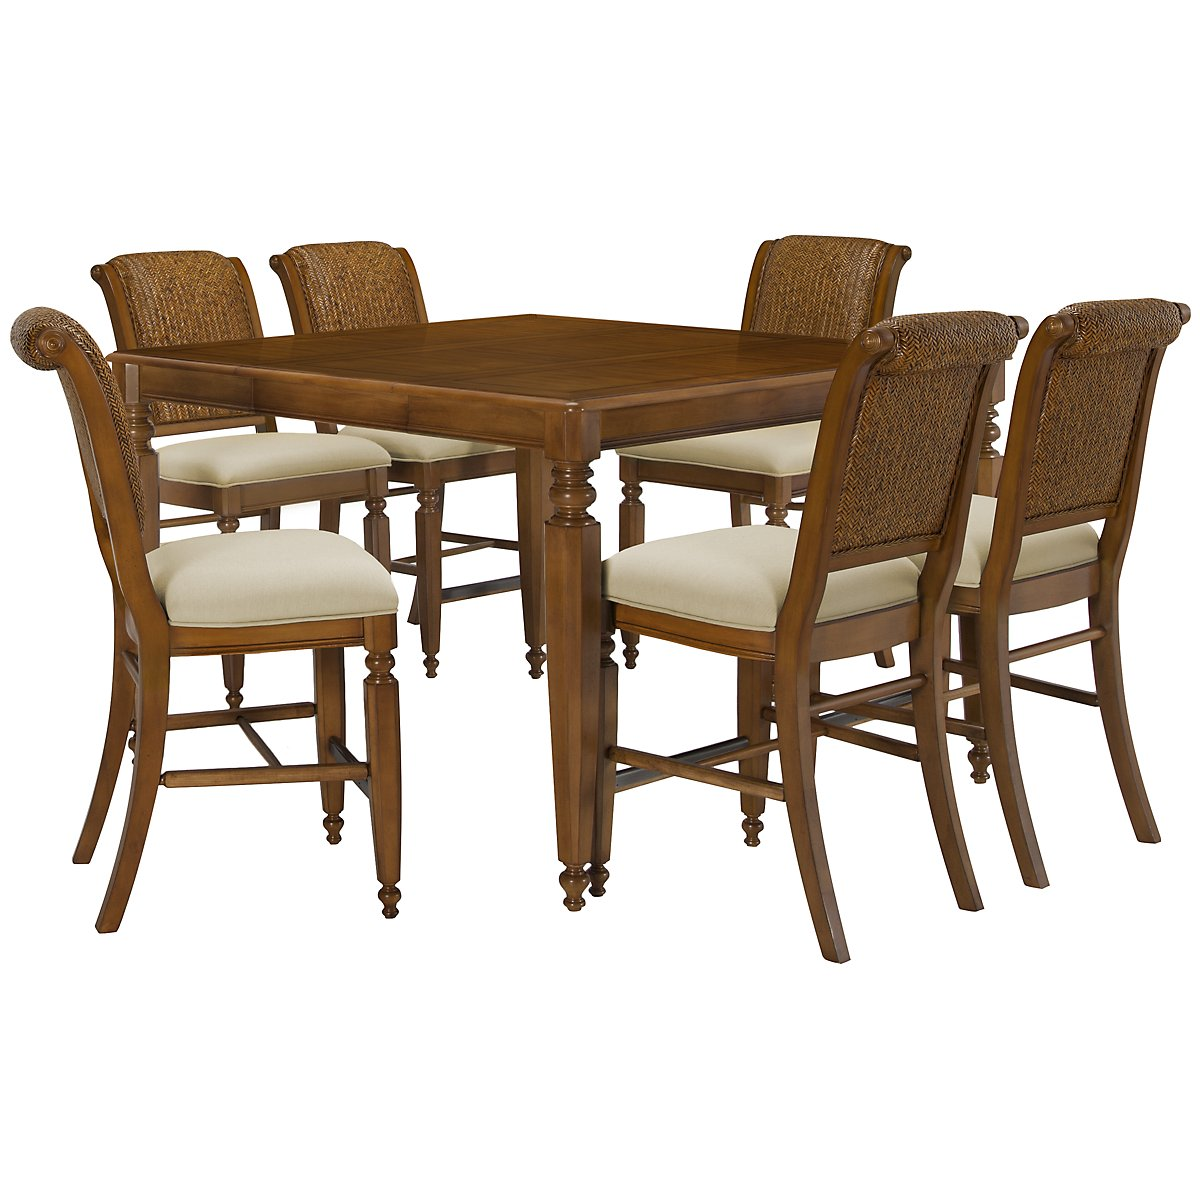 Claire Mid Tone High Table & 4 Woven Barstools